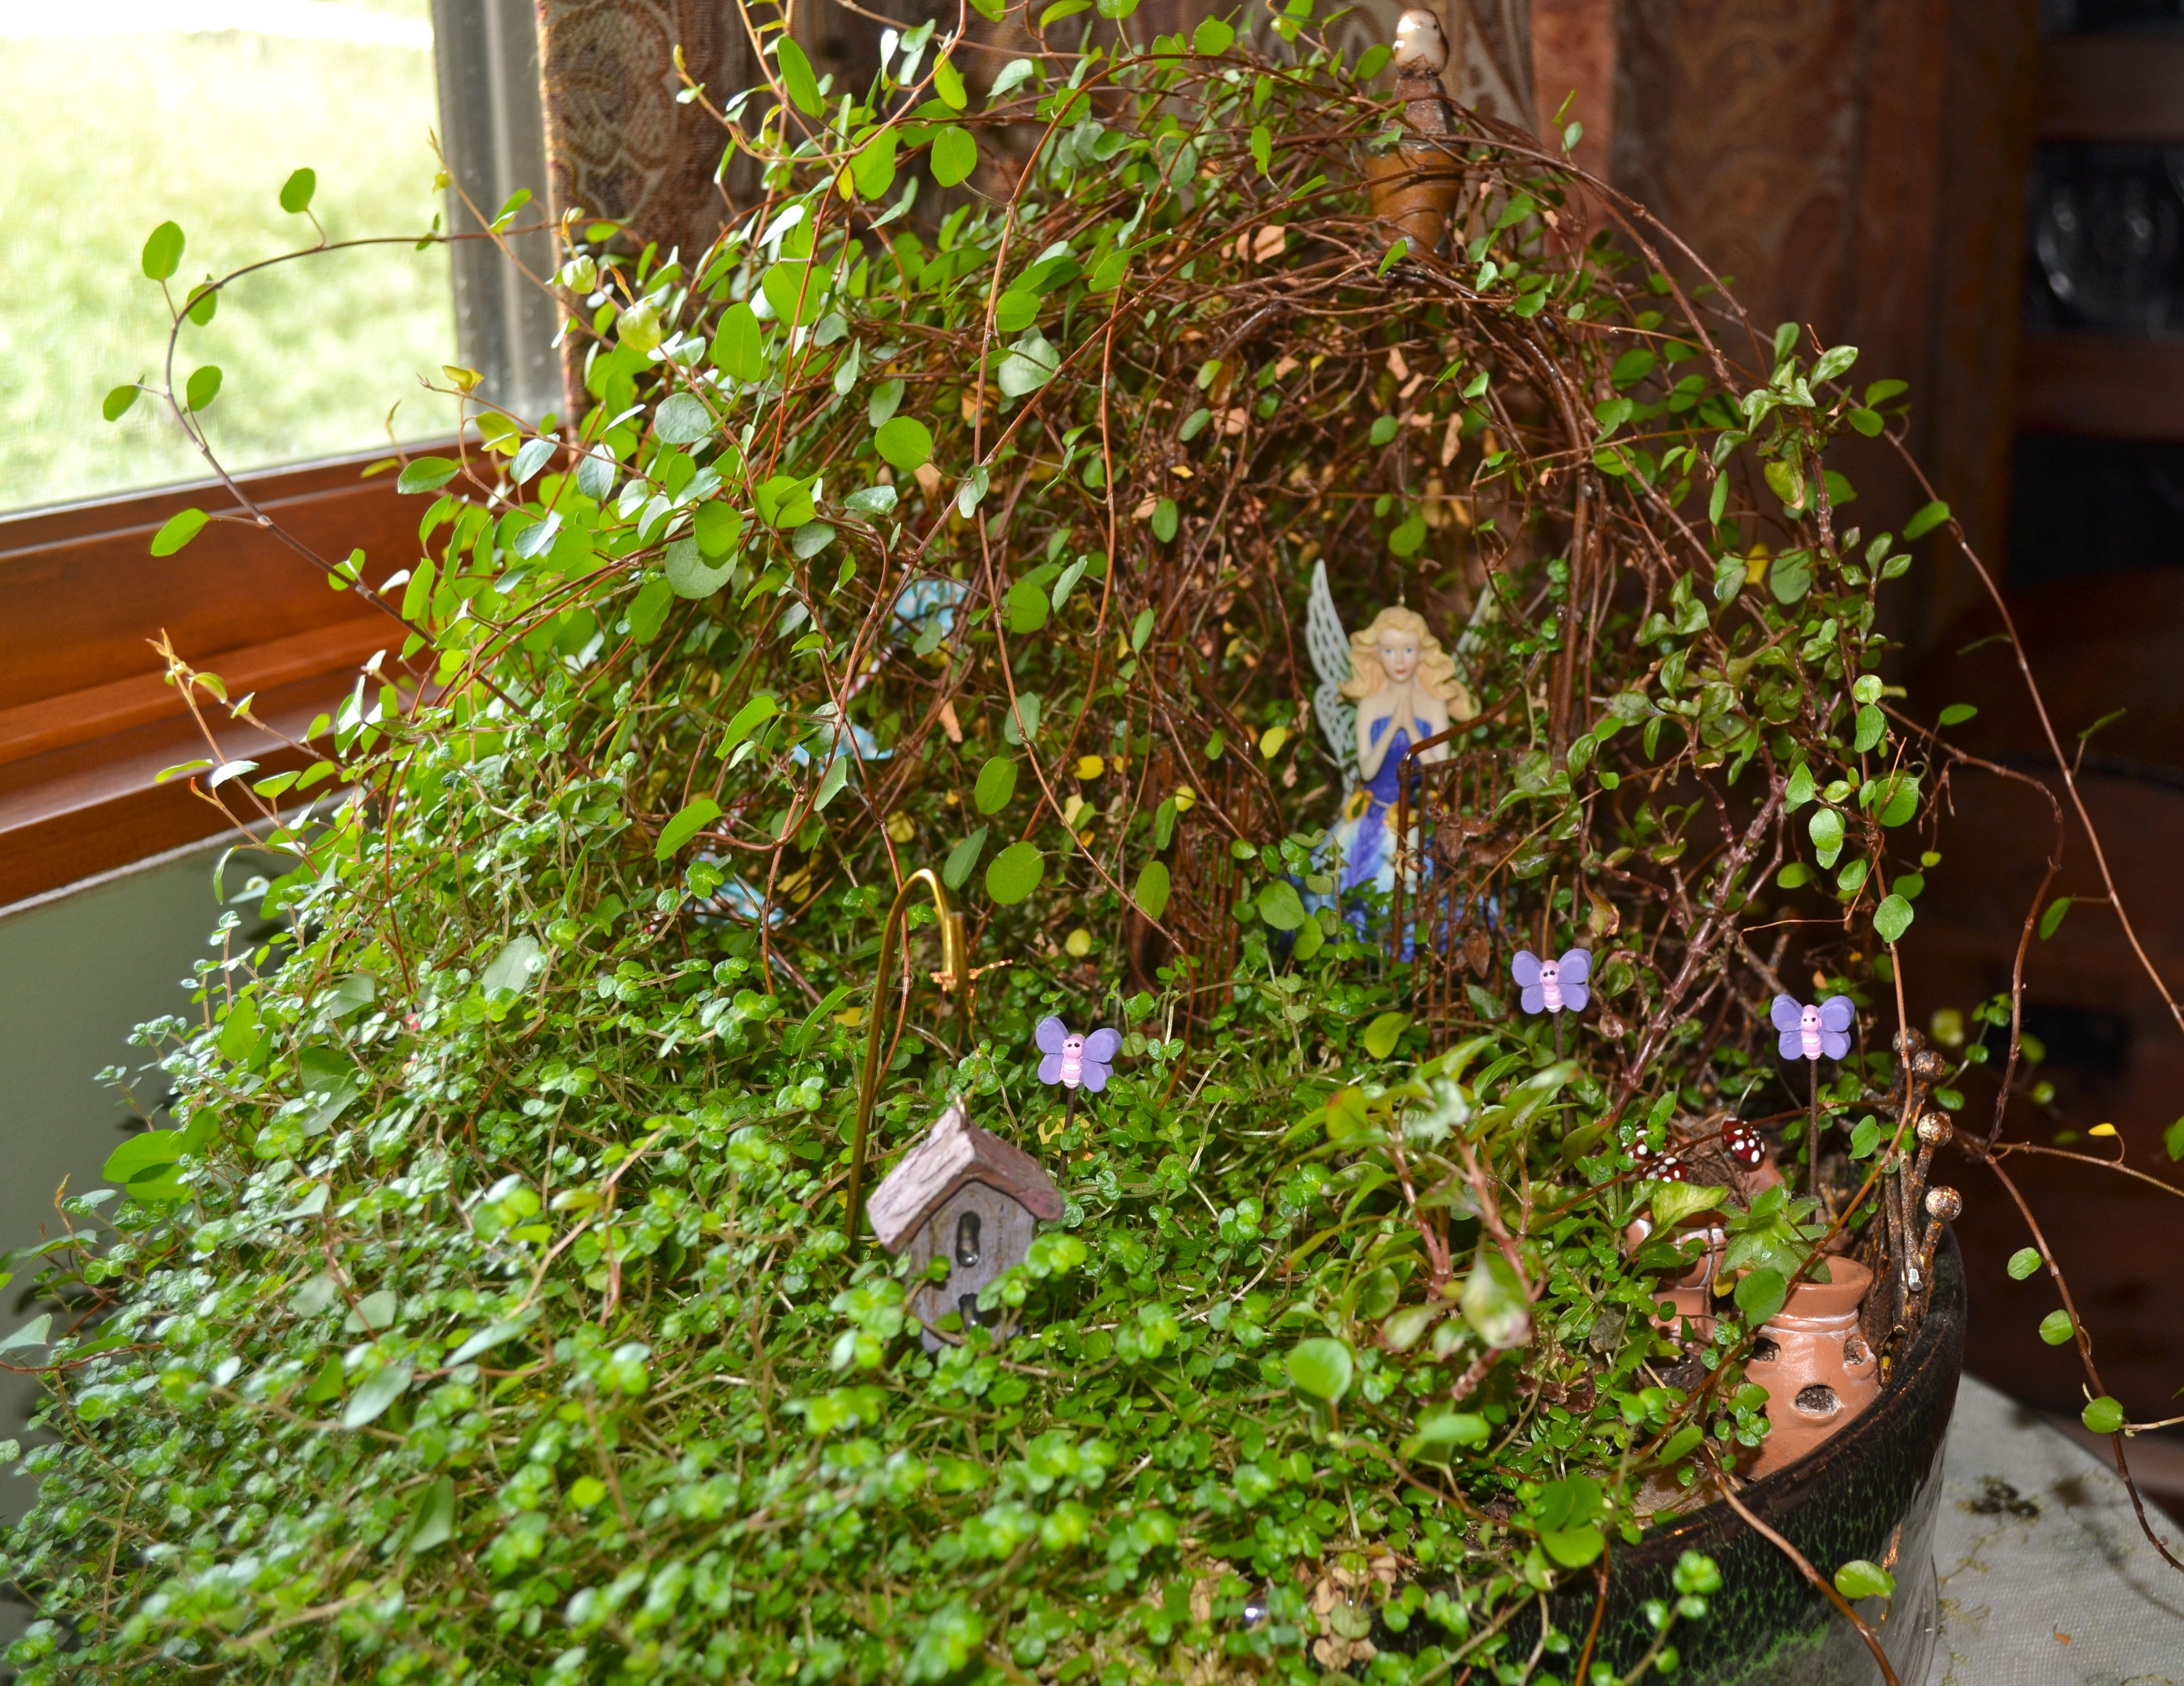 The two plants taking over everything in my fairy garden are ...